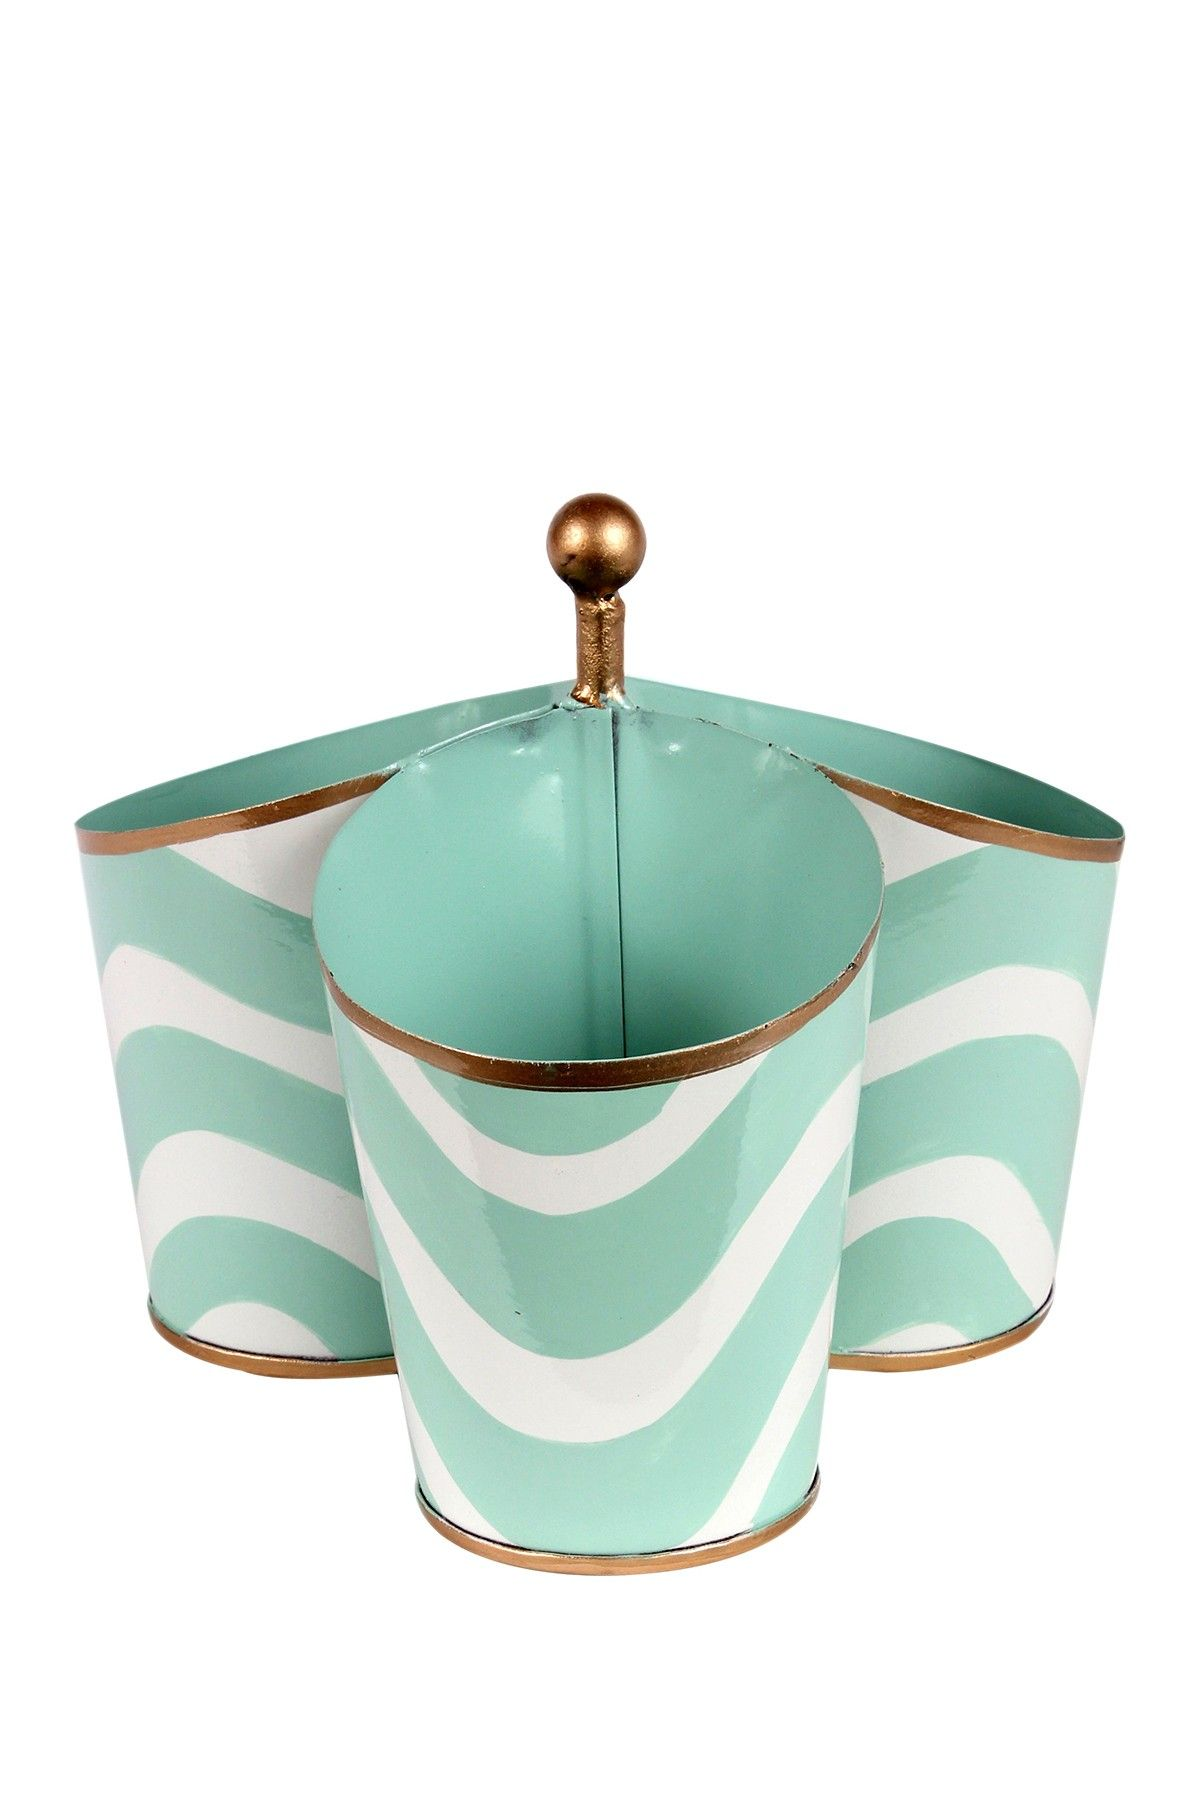 Breakers Aqua Caddy Details: Atop a desk, dining table, or kitchen ...